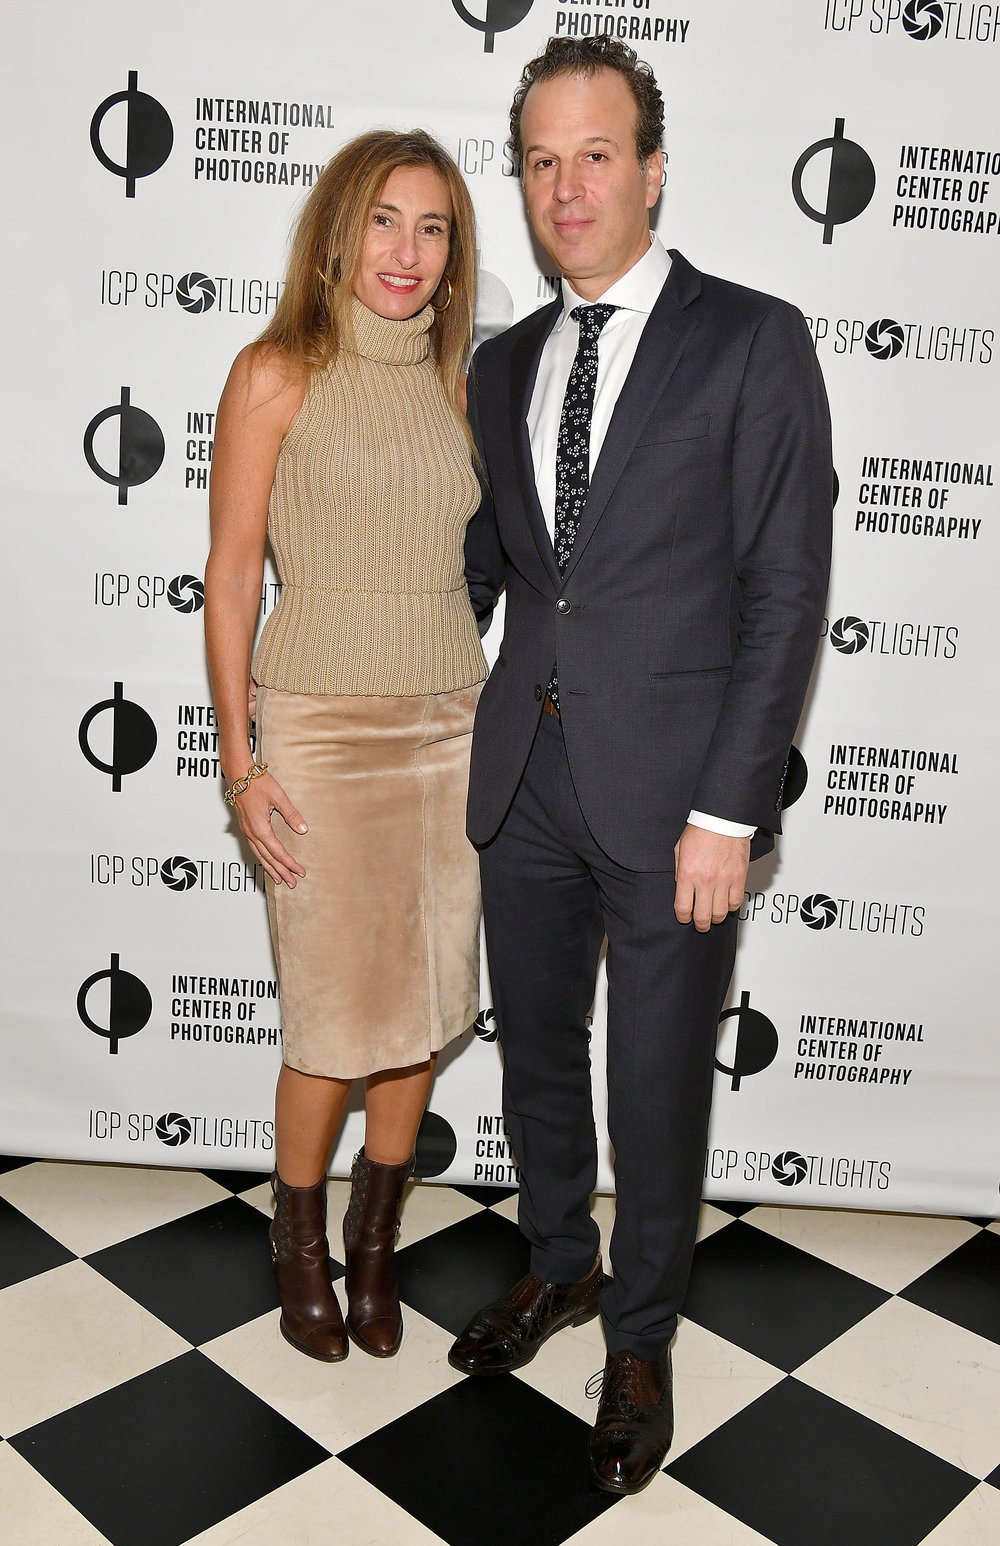 Debby Hymowitx and Mark Lubell attend the ICP Spotlights Luncheon Honoring Mickalene Thomas ©Getty Images for ICP